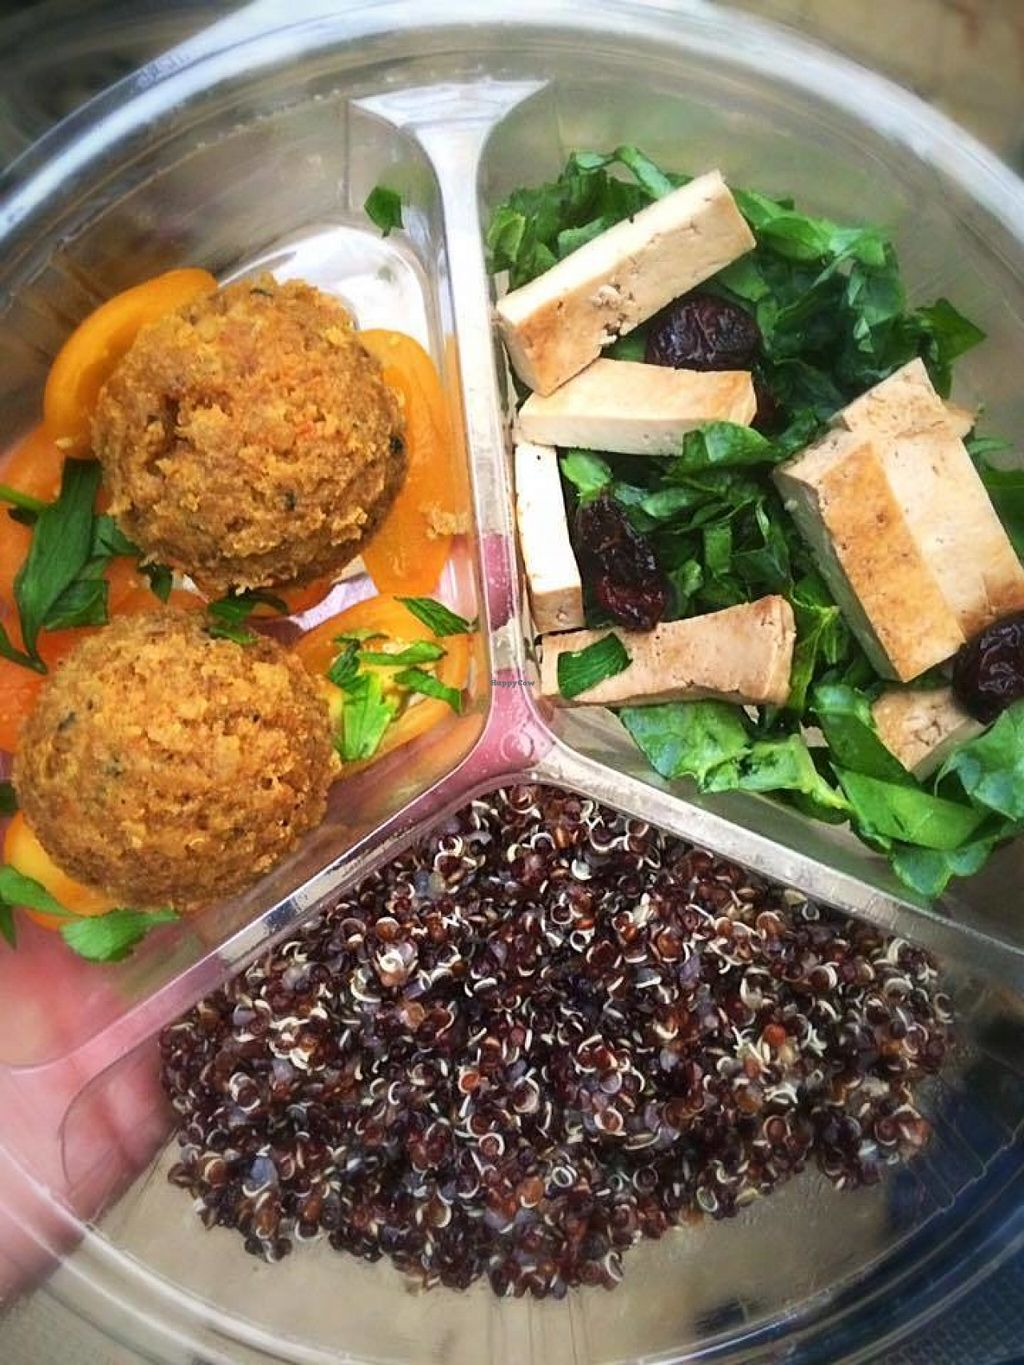 "Photo of Natural Choice Cafe  by <a href=""/members/profile/Chefrawraw"">Chefrawraw</a> <br/>""Indian Burger Bites"", kale salad with tofu, quinoa in a platter!  <br/> July 26, 2016  - <a href='/contact/abuse/image/76087/162348'>Report</a>"